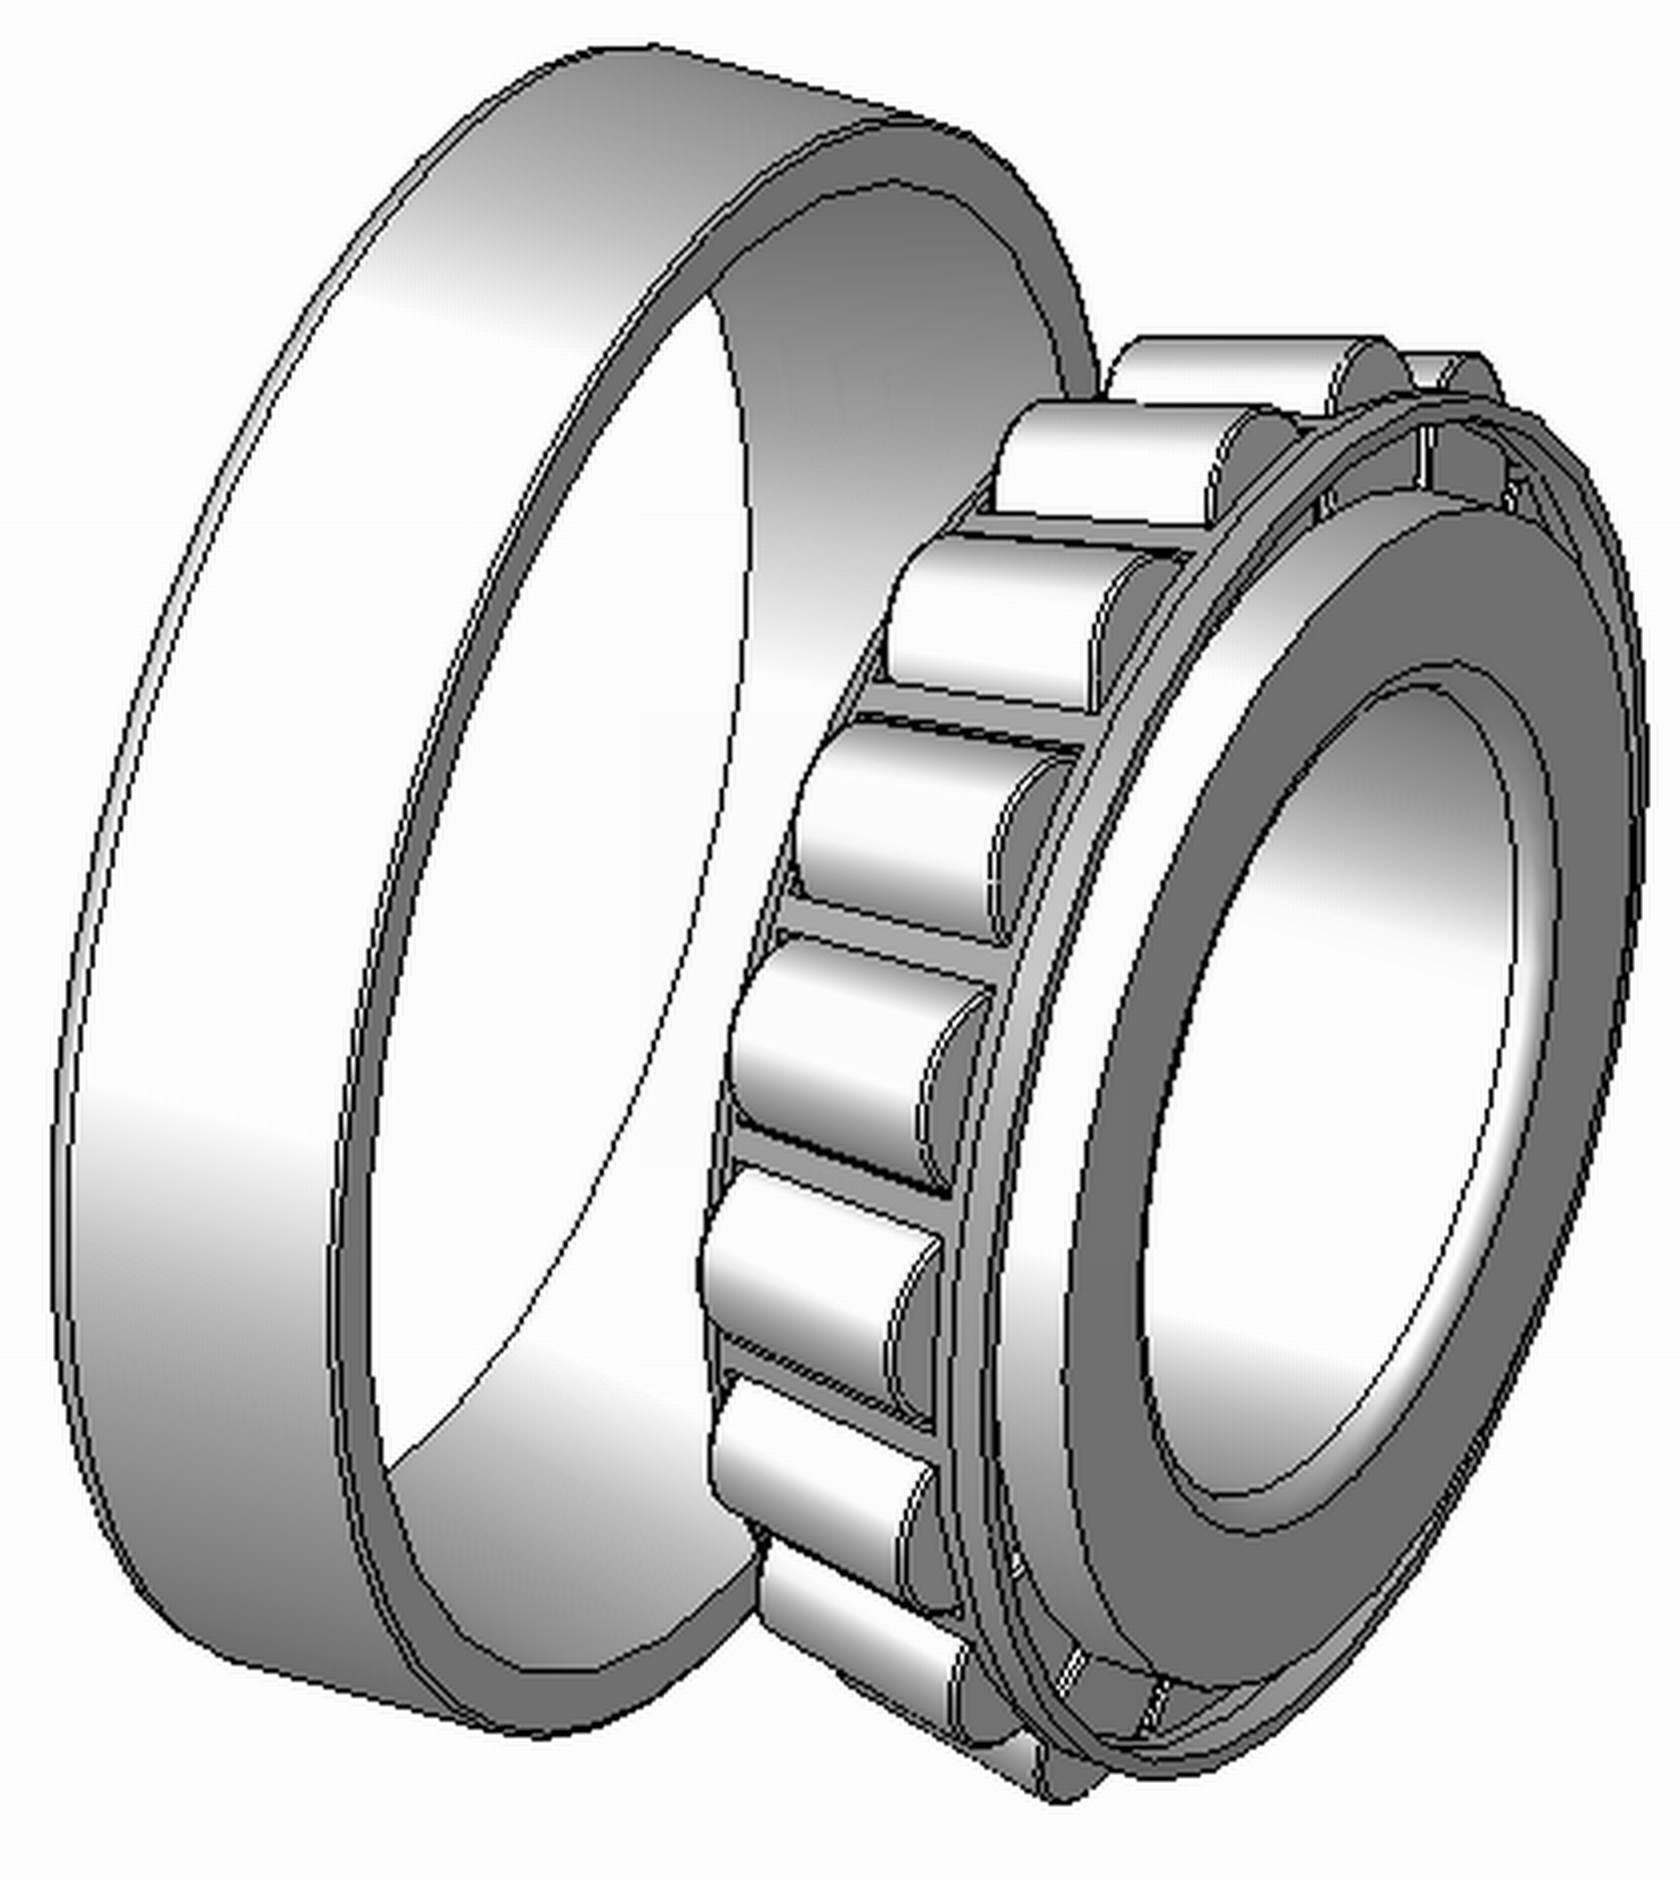 Tapered Roller Bearing Wikipedia